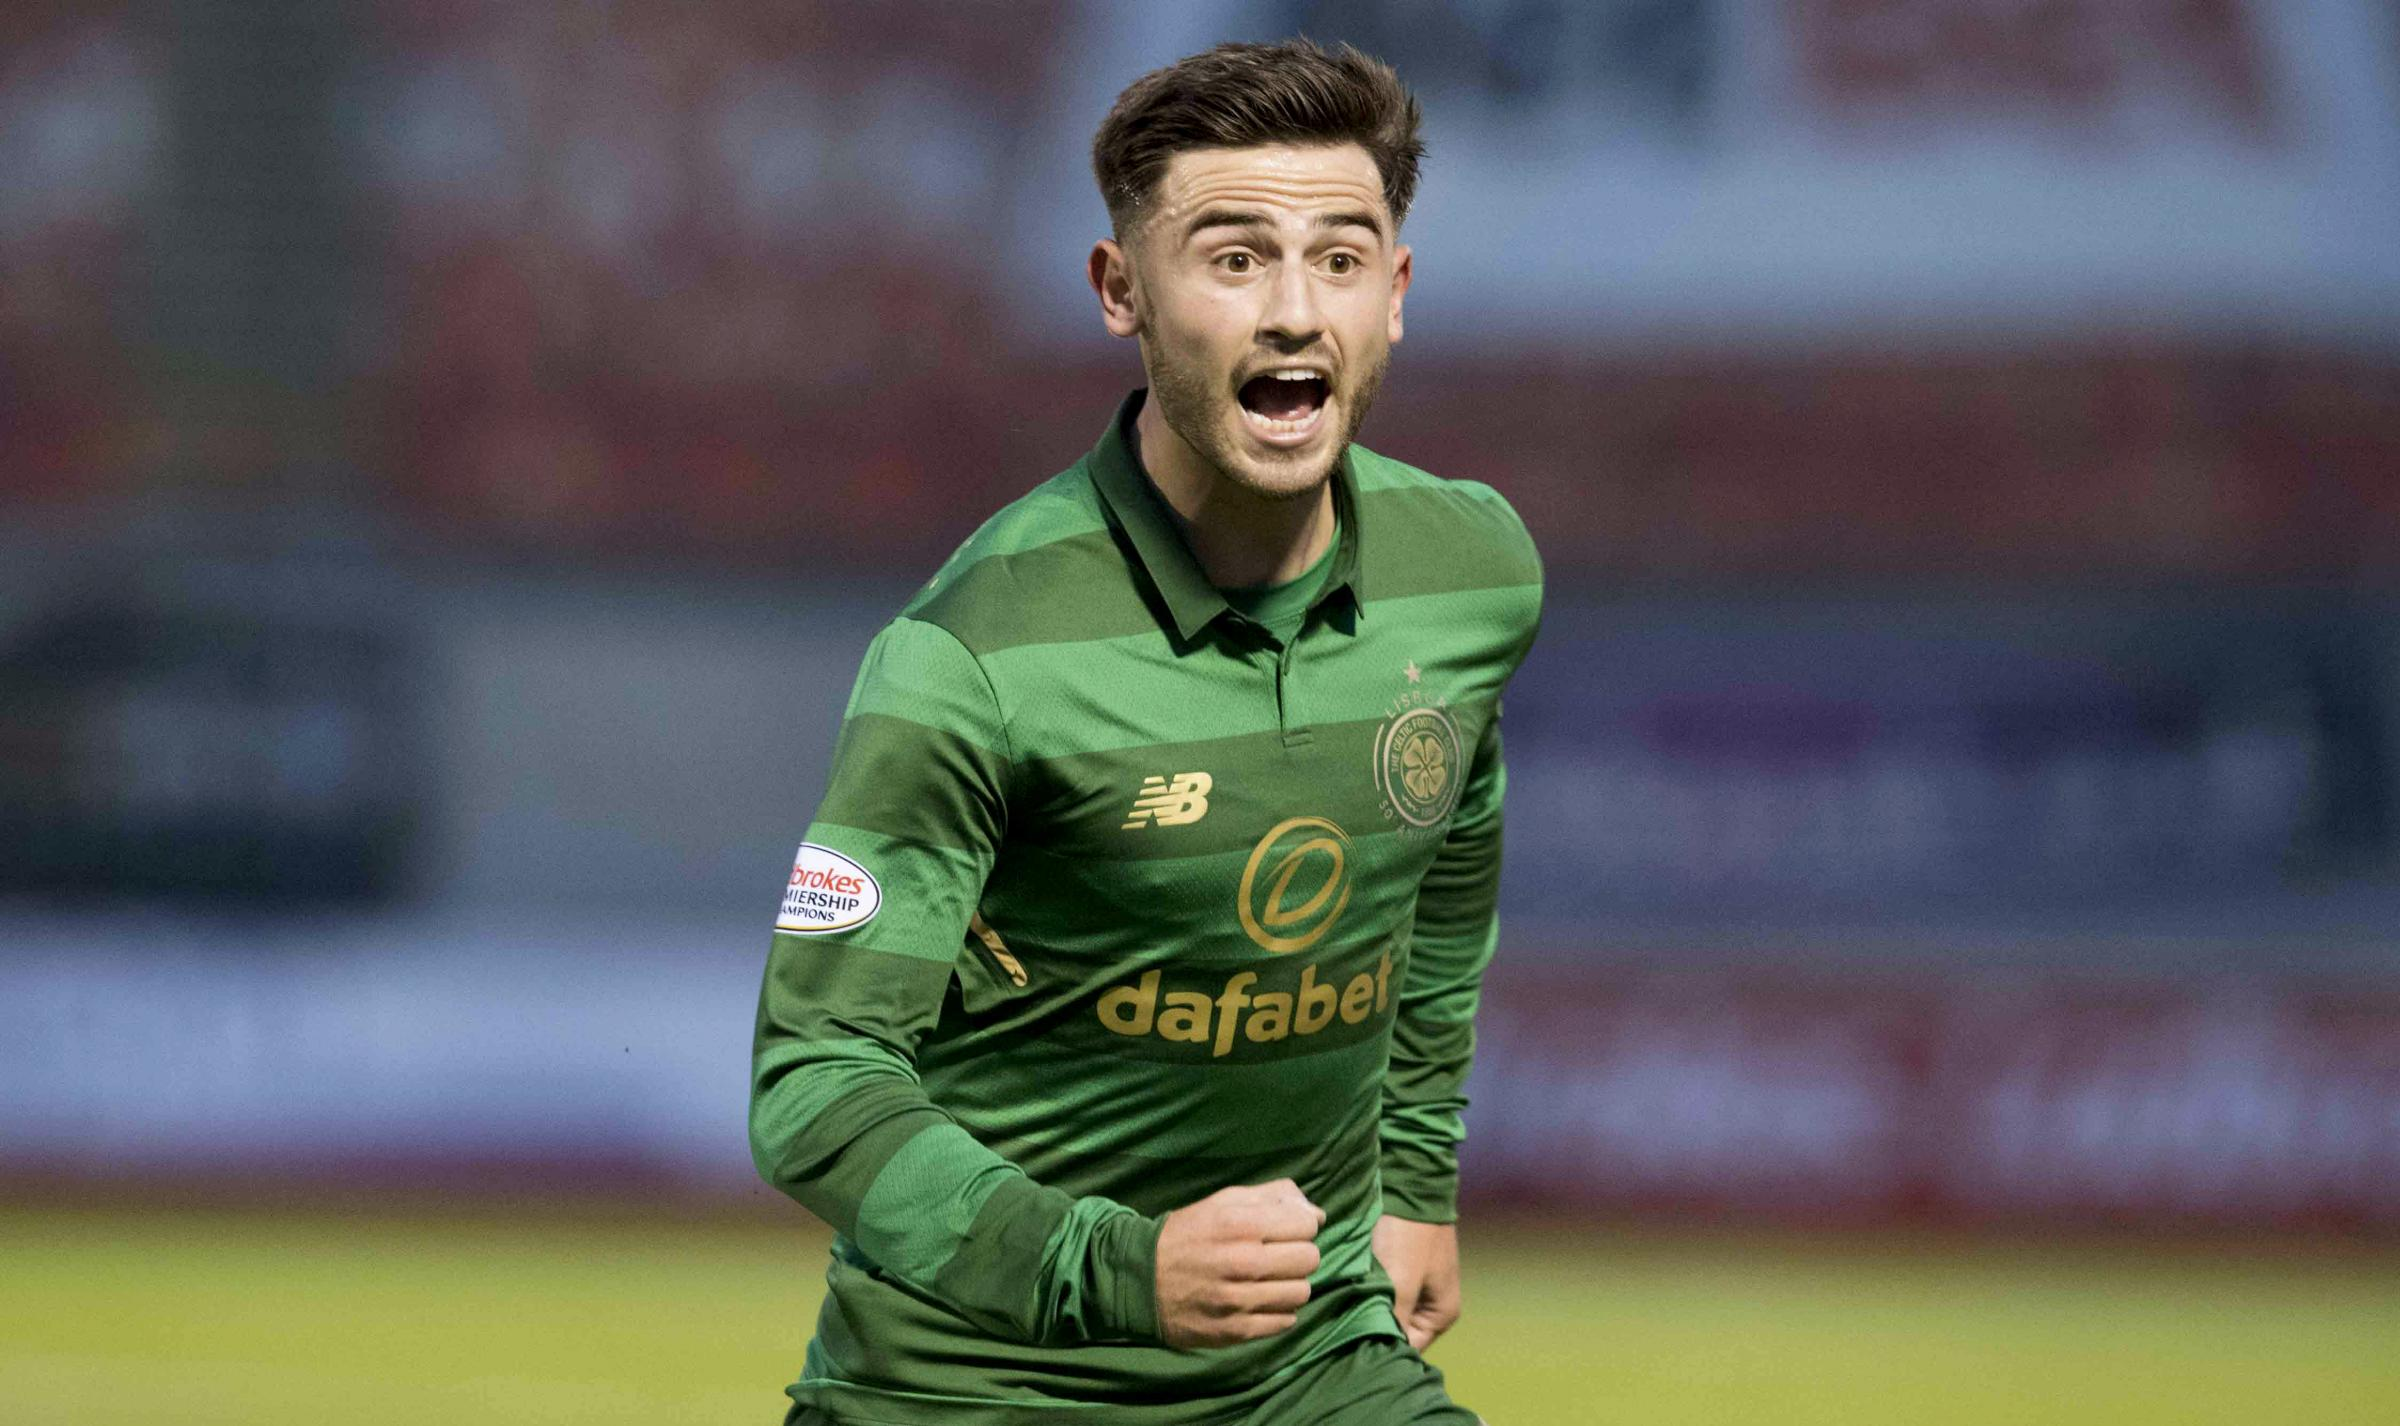 Patrick Roberts retuned to the club on loan from Manchester City